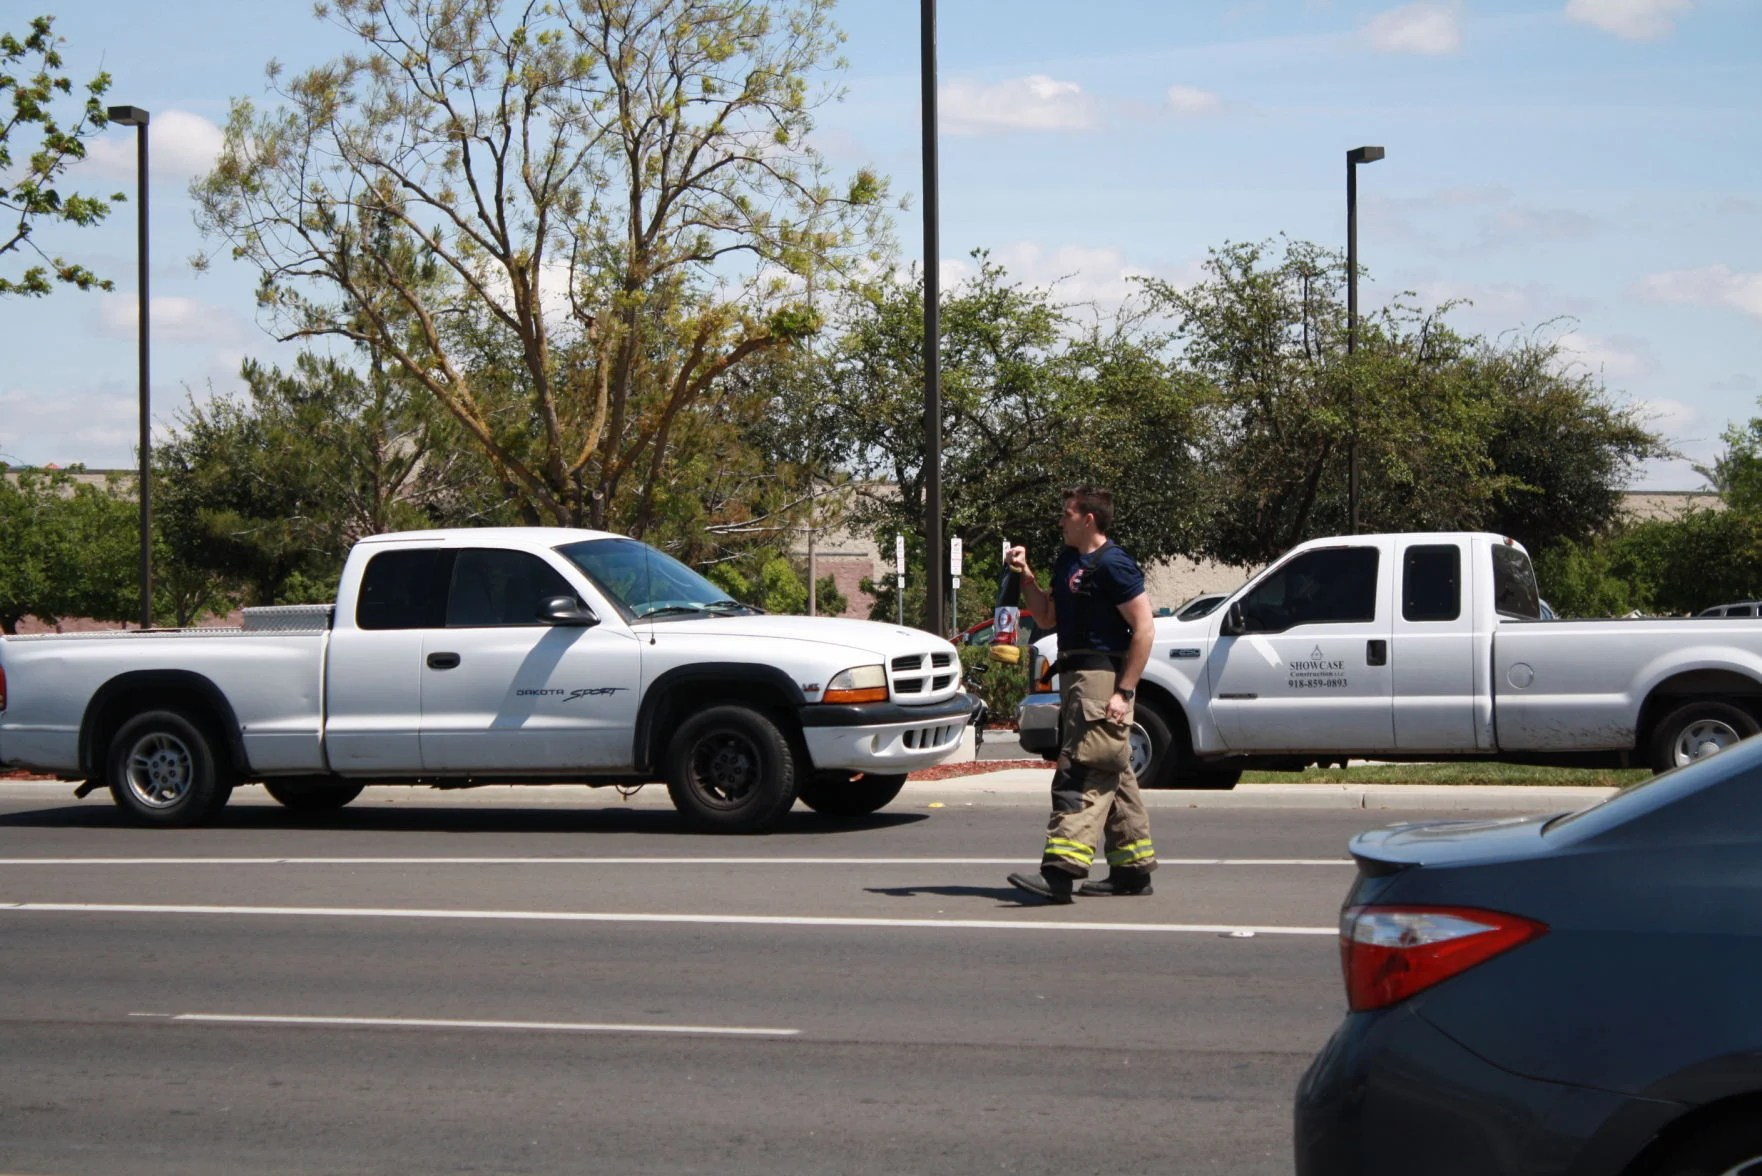 Firefighters 39fill The Boot39 Local Hanfordsentinelcom